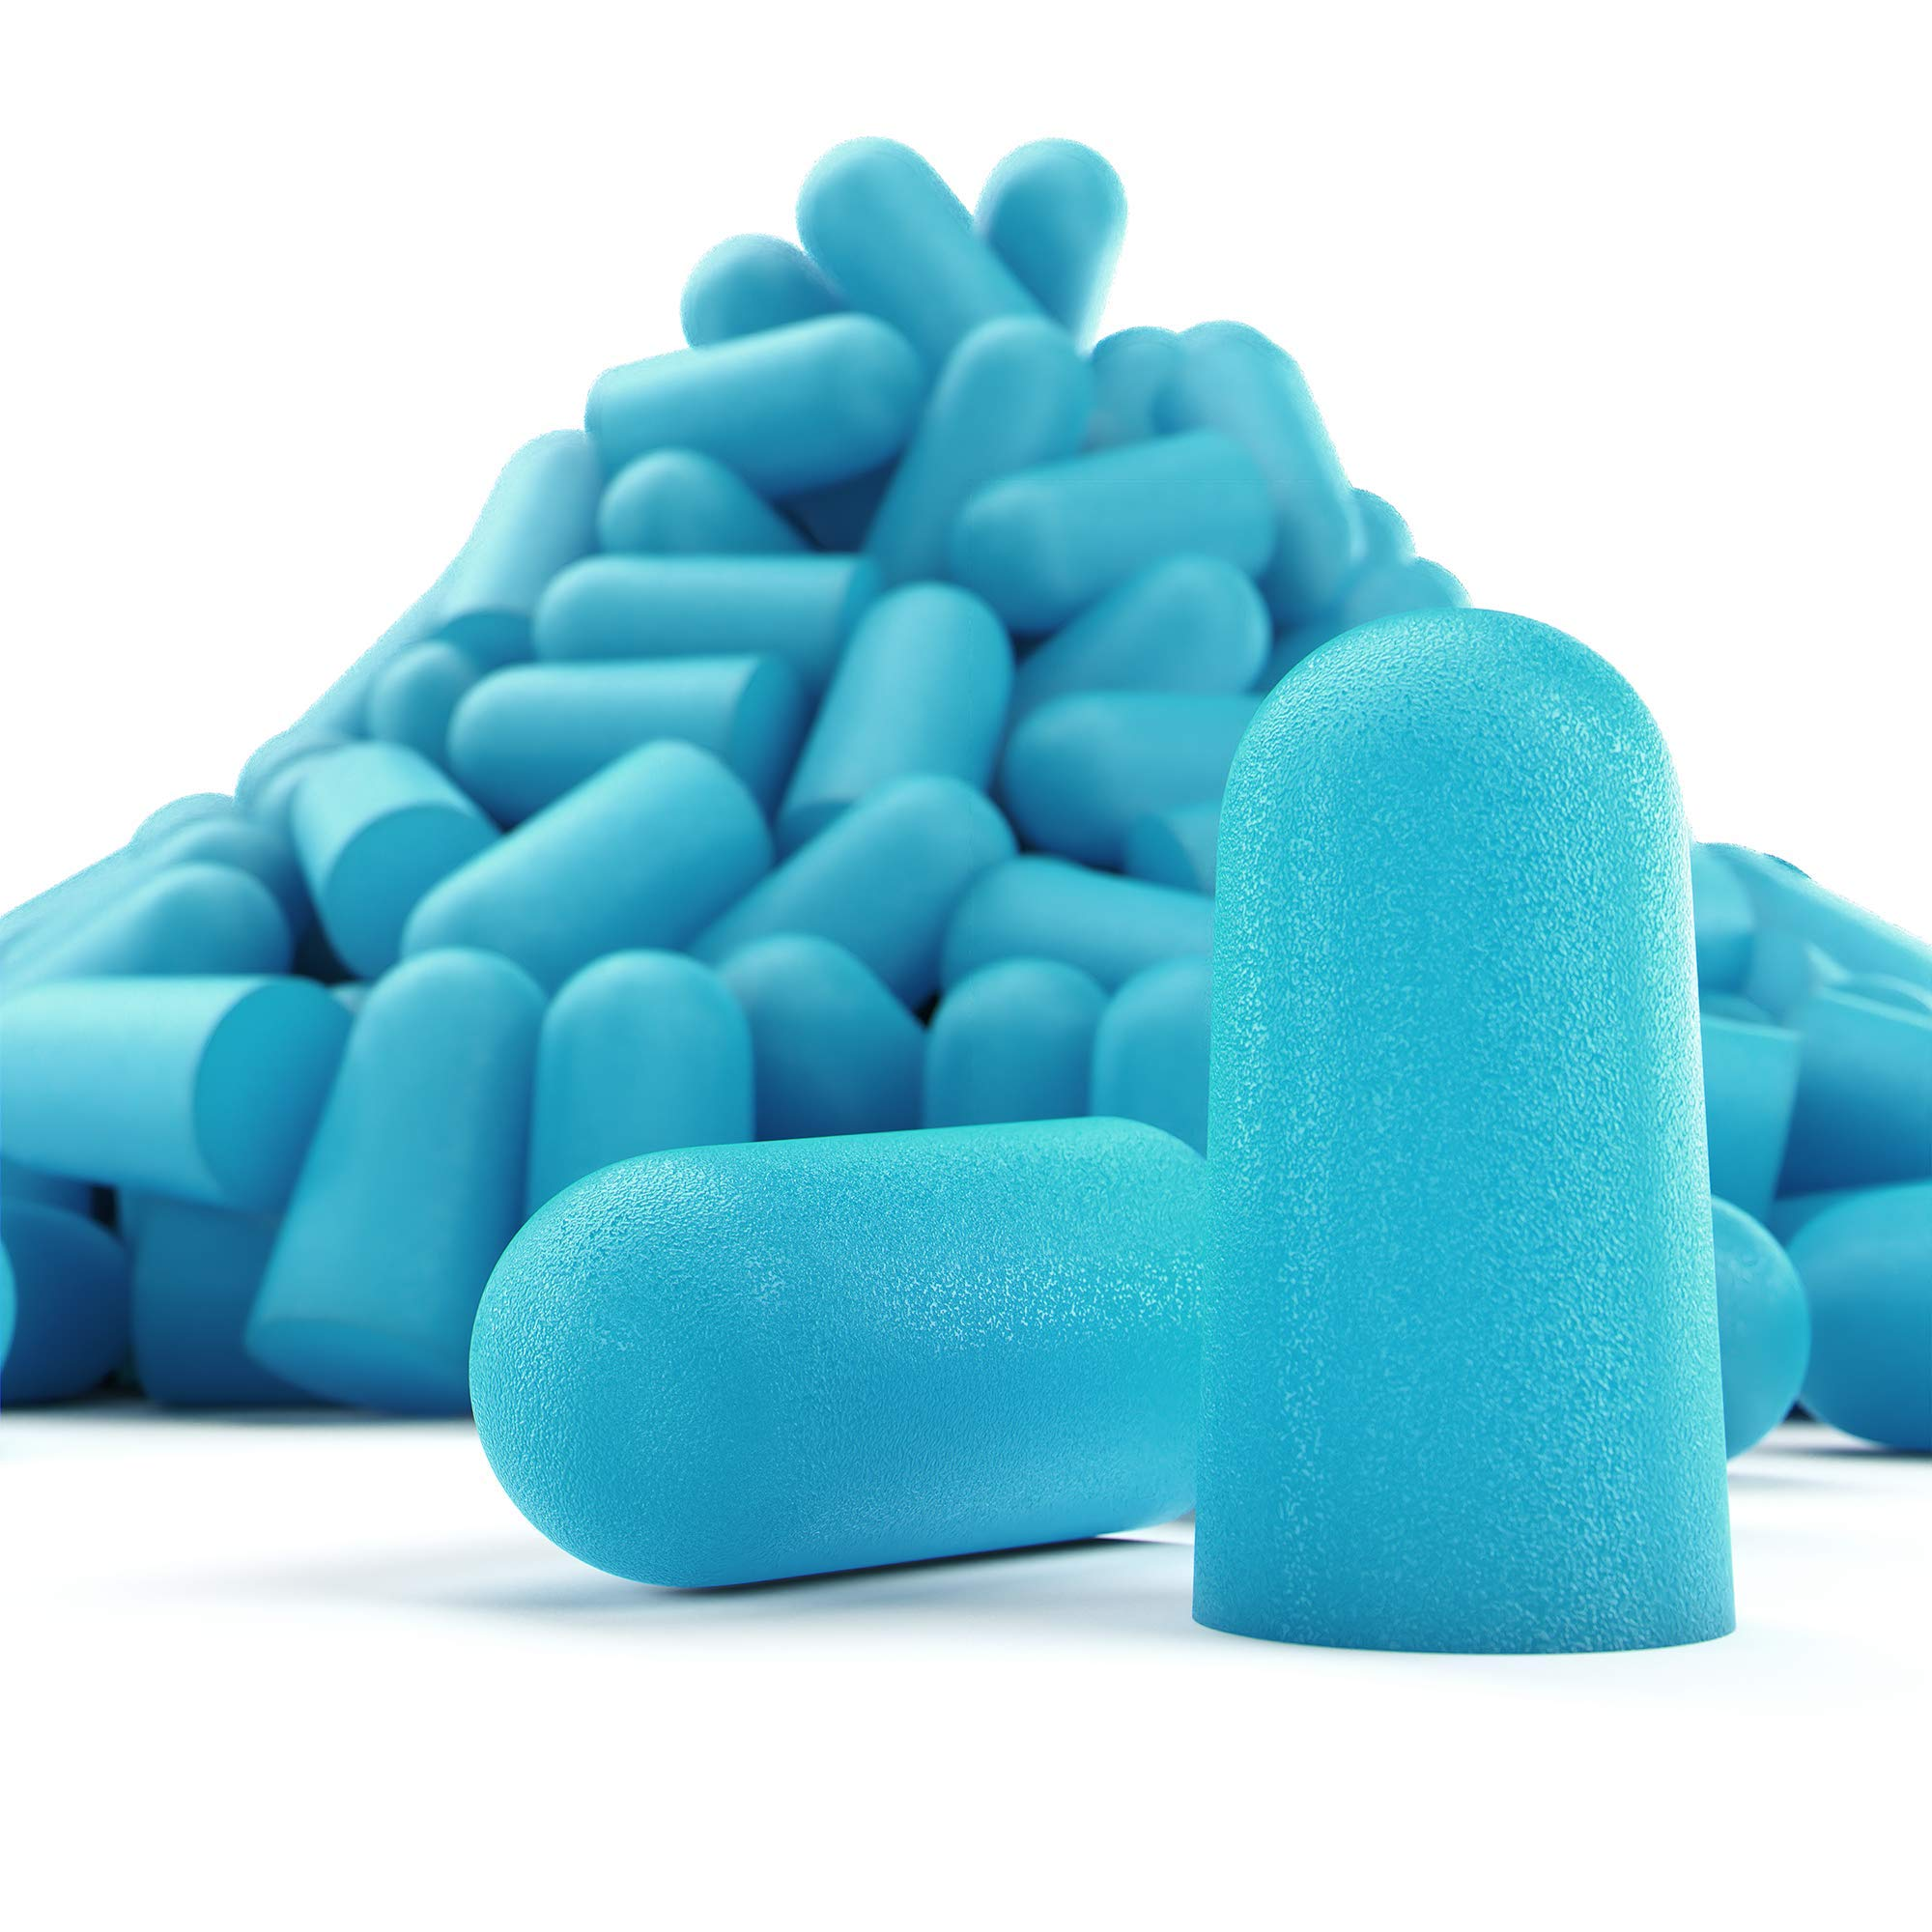 Eargasm Foam Earplugs, 300 Pairs, 32 dB NRR, Super Soft, Great for Sleeping, Studying, Snoring, Comes with Bonus Carrying Case